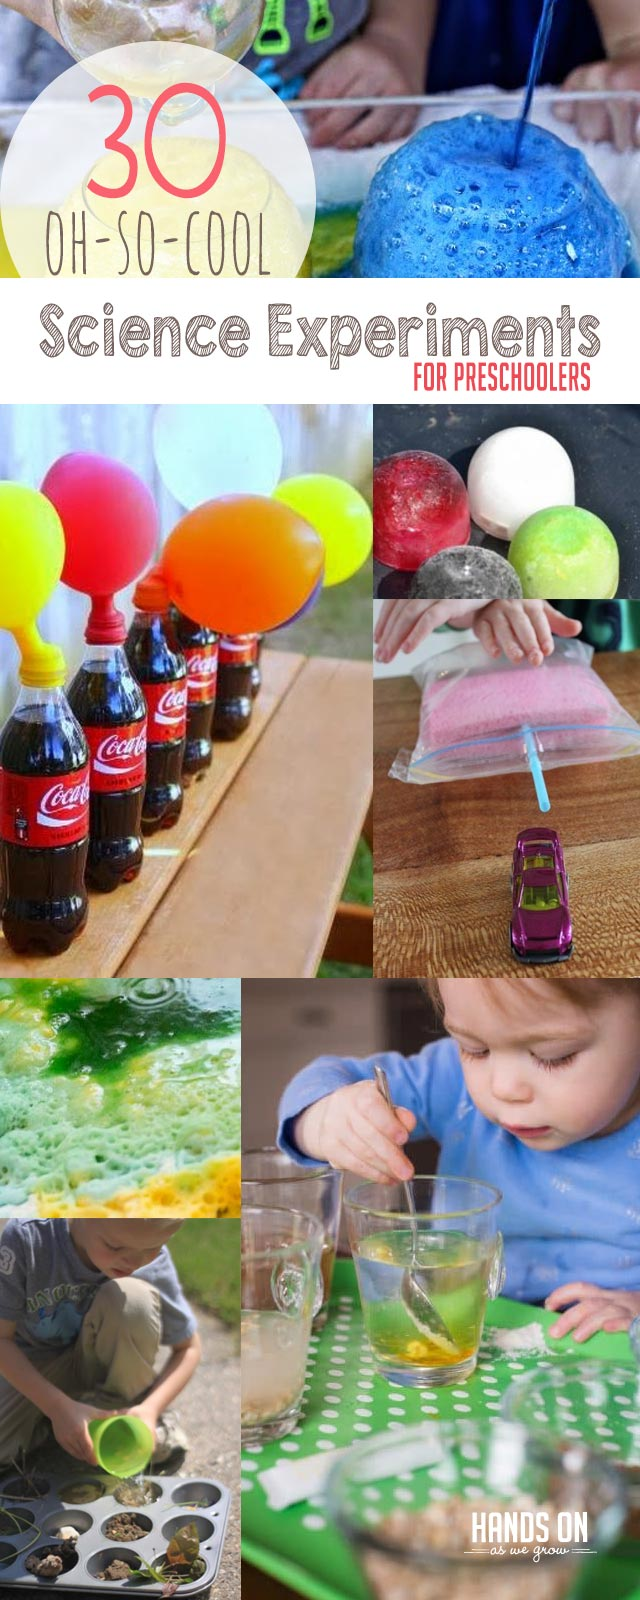 You'll love trying out these science experiments for preschoolers. Help your little one discover a love of science early!